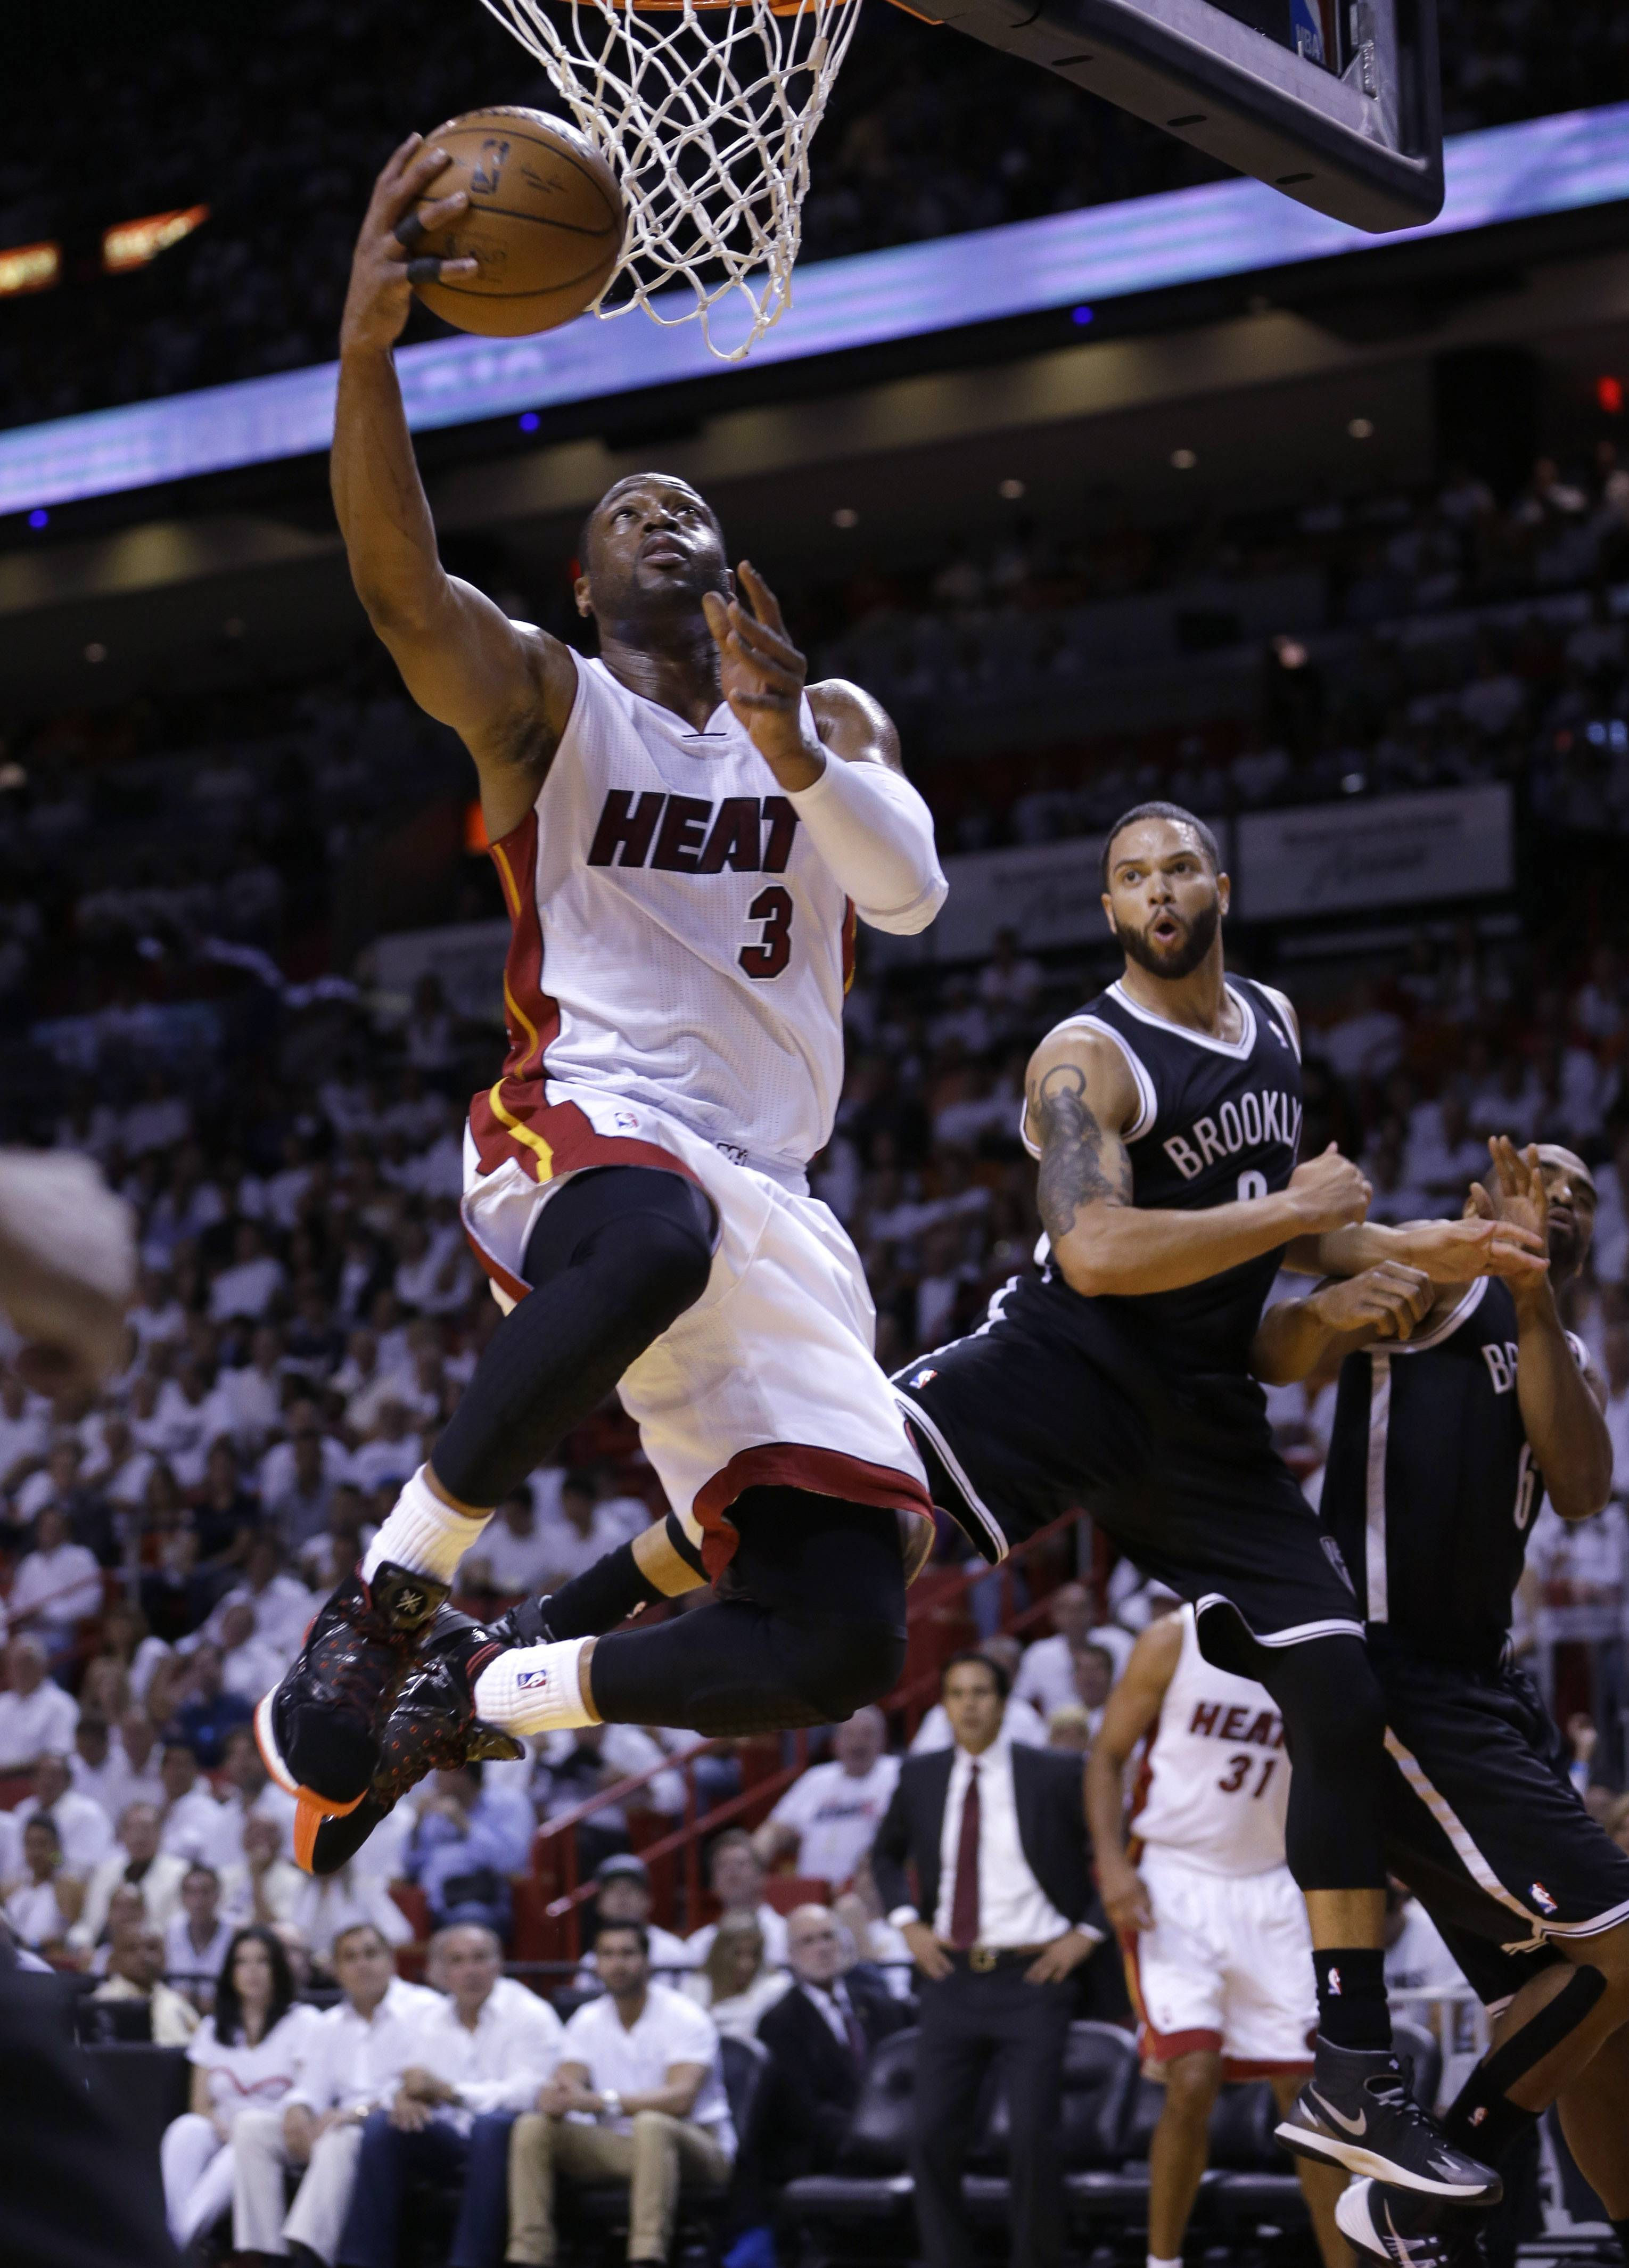 Miami Heat guard Dwyane Wade (3) goes to th basket against the Brooklyn Nets during the first half of Game 5 of a second-round NBA playoff basketball game in Miami, Wednesday, May 14, 2014.